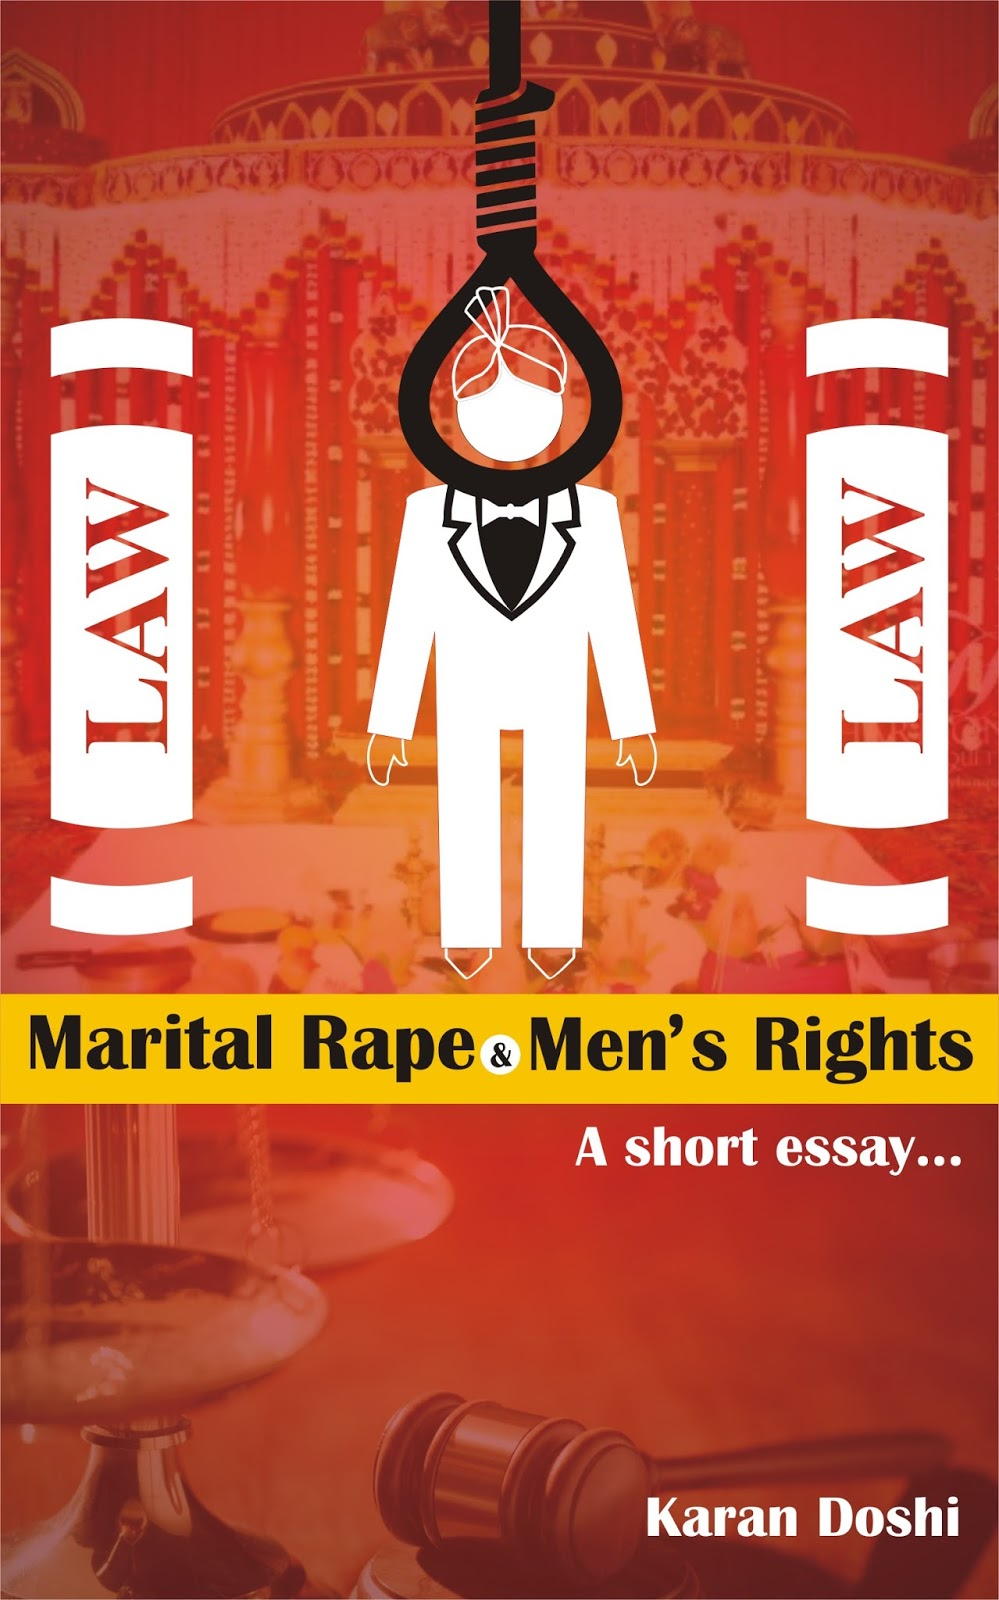 marital rape a worrying trend essay Kinky 'fifty shades' sex and porn linked to divorce of the islamic republic and worrying authorities out about violent sex and marital rape.